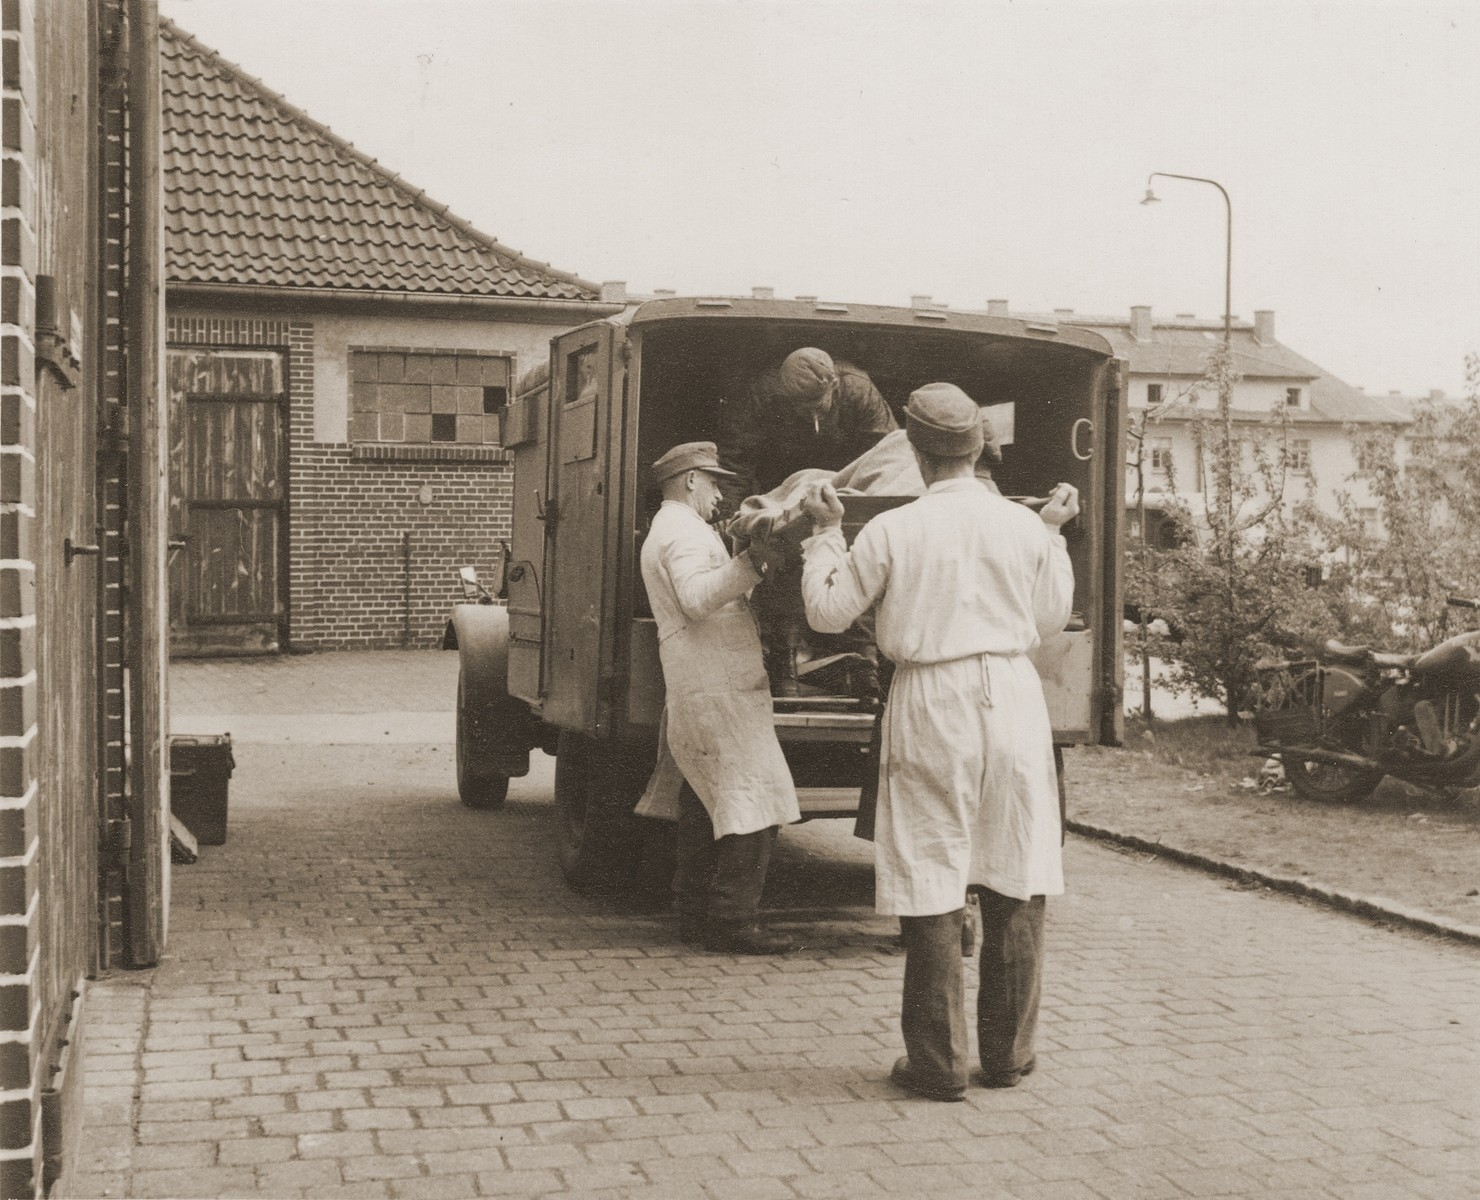 British medical personnel evacuate a survivor by ambulance from the Bergen-Belsen concentration camp.